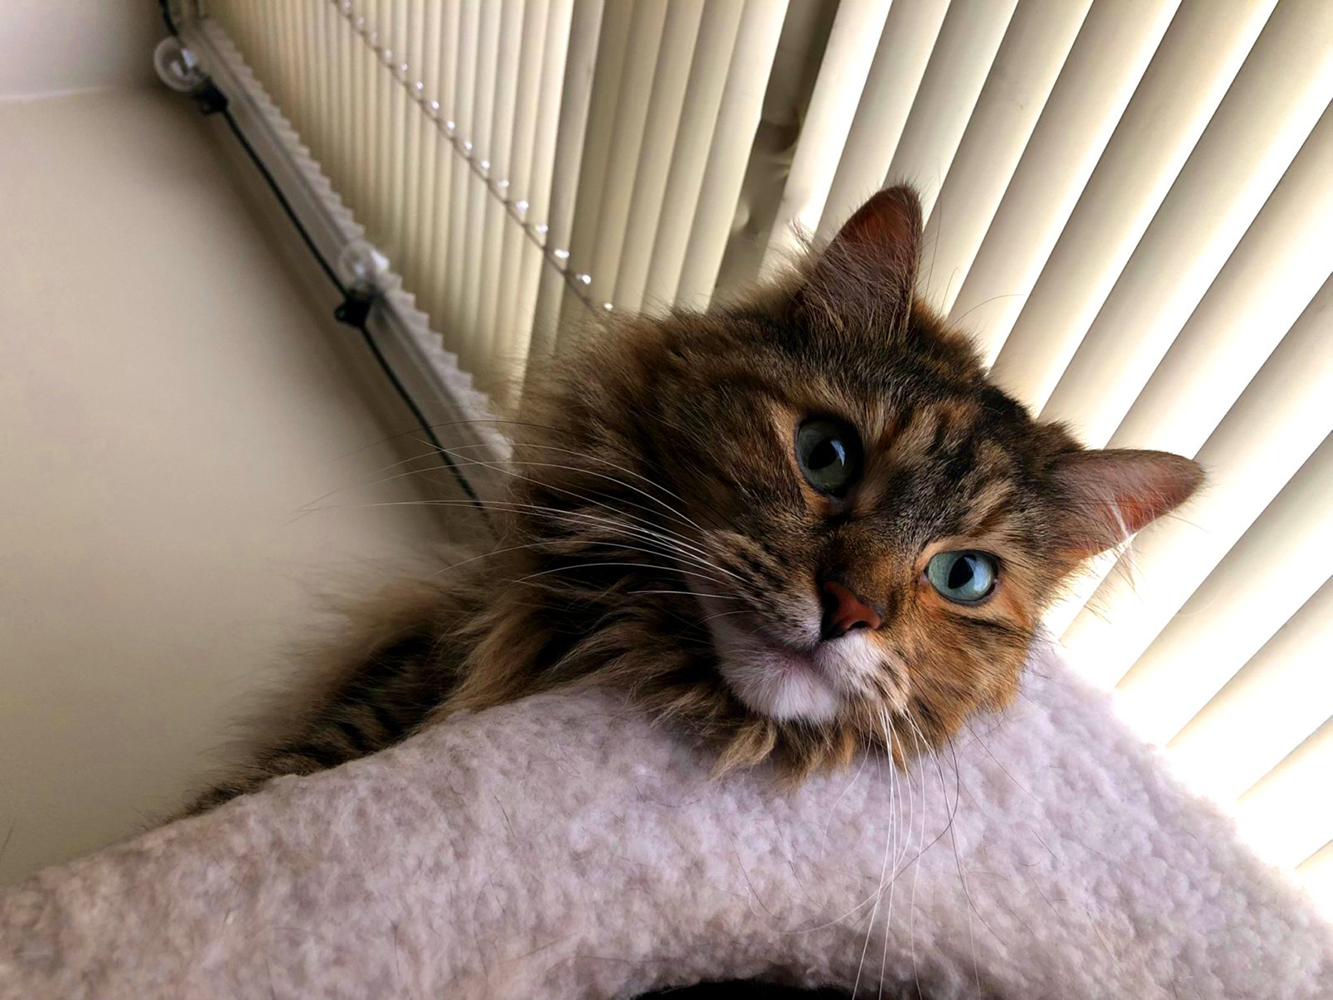 "CuCu (Koo Koo) is a Maine Coon mix, and ""absolute maniac"" according to her parents Ty & Amber! She loves jumping off the walls while she hunts her toys, it's like having a small parkour athlete in the house! She loves to play, and delivers ""dead"" stuffed animals to her parents as her daily ""kill"". Her favorite place to hang out is the bathtub, where she begs for the faucet to be turned on! If she's not hunting a stuffed animal, jumping off walls or in the bathtub, she can be found in one of windows, catching some sun. You can find CuCu on Instagram @twink_and_cucu. The<a  href=""http://seattlerefined.com/ruffined"" target=""_blank"" title=""http://seattlerefined.com/ruffined"">{&nbsp;}Seattle RUFFined Spotlight</a>{&nbsp;}is a weekly profile of local pets living and loving life in the PNW. If you or someone you know has a pet you'd like featured, email us at{&nbsp;}<a  href=""mailto:hello@seattlerefined.com"" target=""_blank"" title=""mailto:hello@seattlerefined.com"">hello@seattlerefined.com</a>{&nbsp;}and your furbaby could be the next spotlighted! (Image: Ty Huffer / Seattle Refined)"